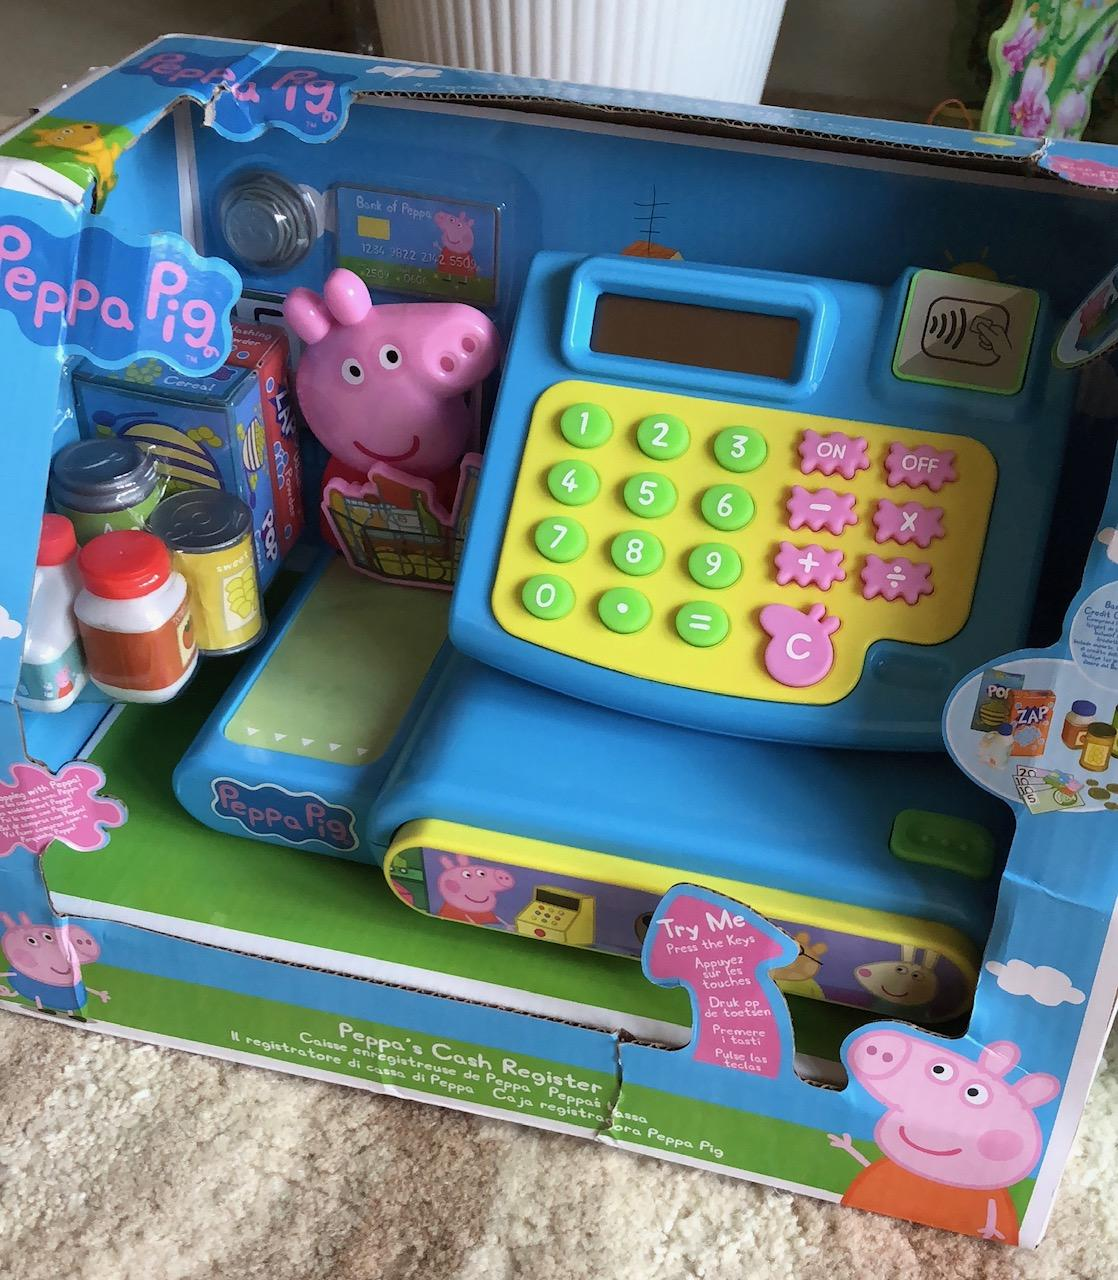 Peppa Pig cash register in the box